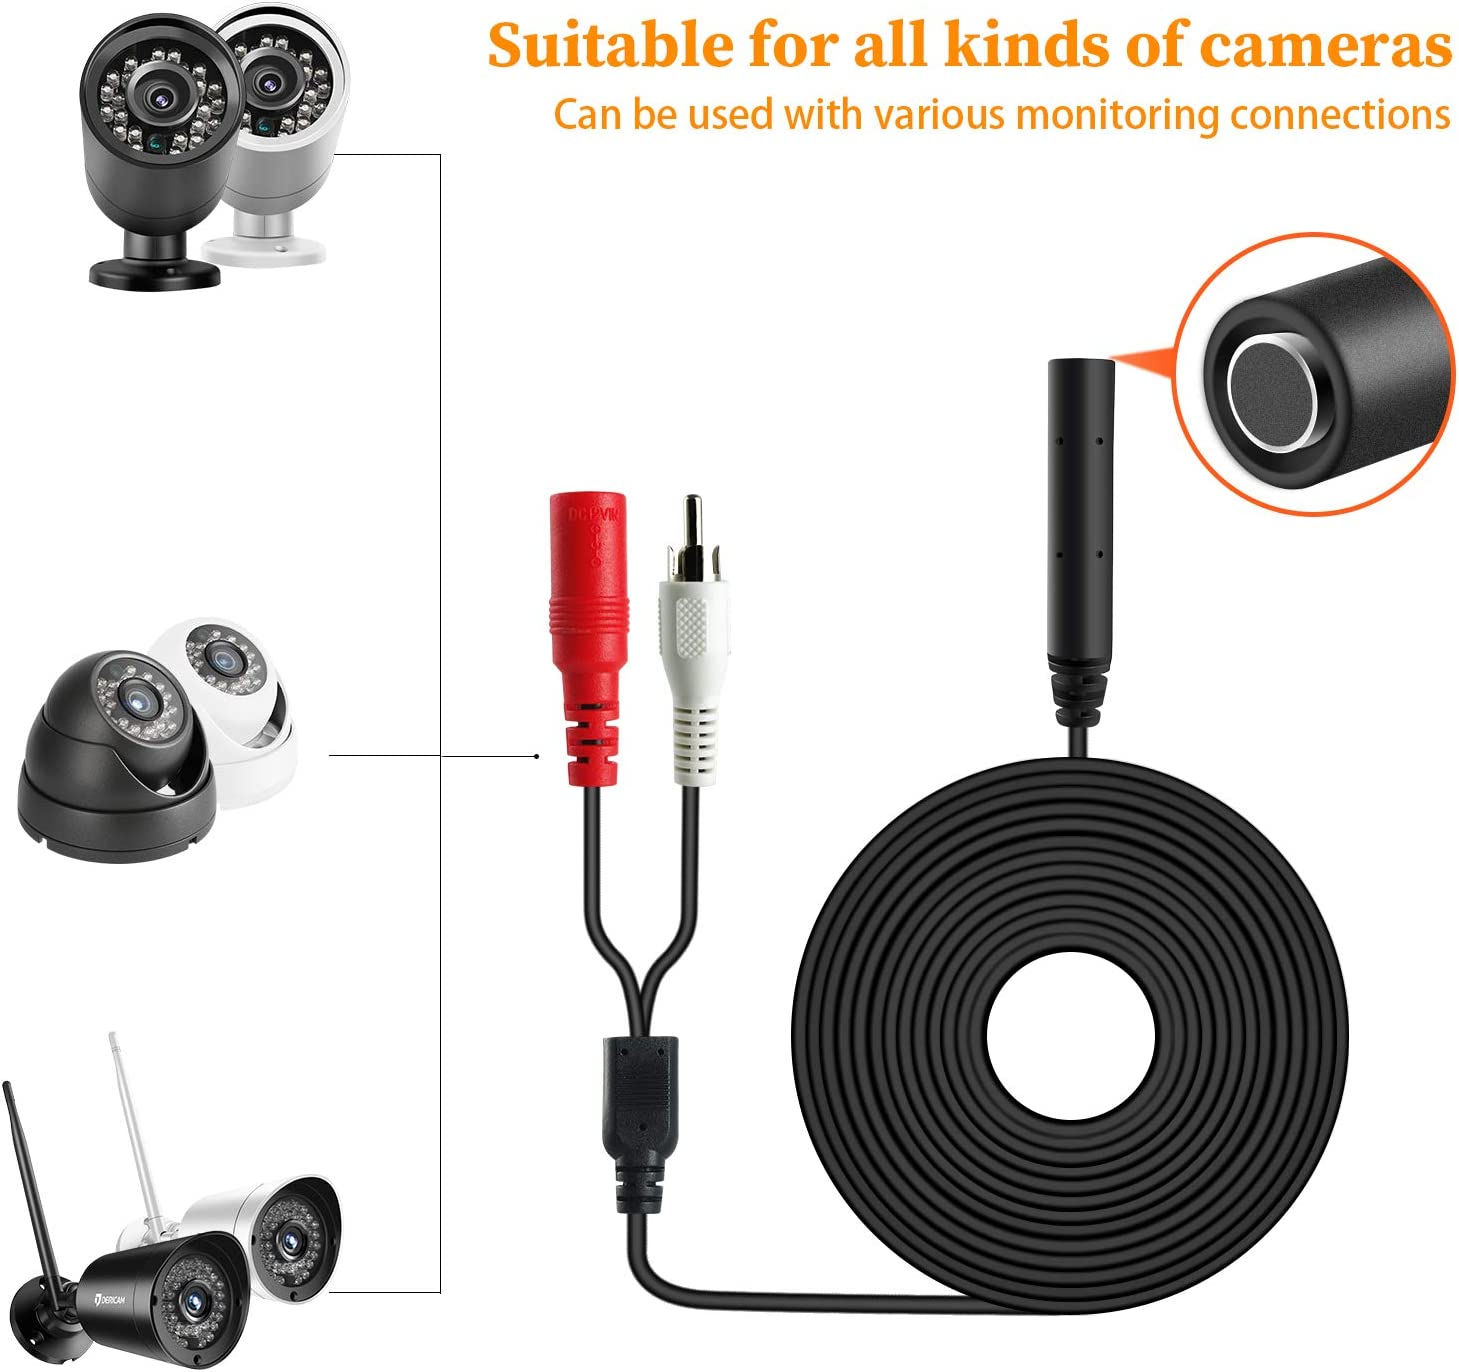 Dericam High Sensitive Microphone for CCTV//IP Camera//DVR//NVR 60ft Cable with Power Splitter Tiny CCTV Audio Pickup Mic Black External Camera Sound Included 12V DC Power Adapter AP1-2BP